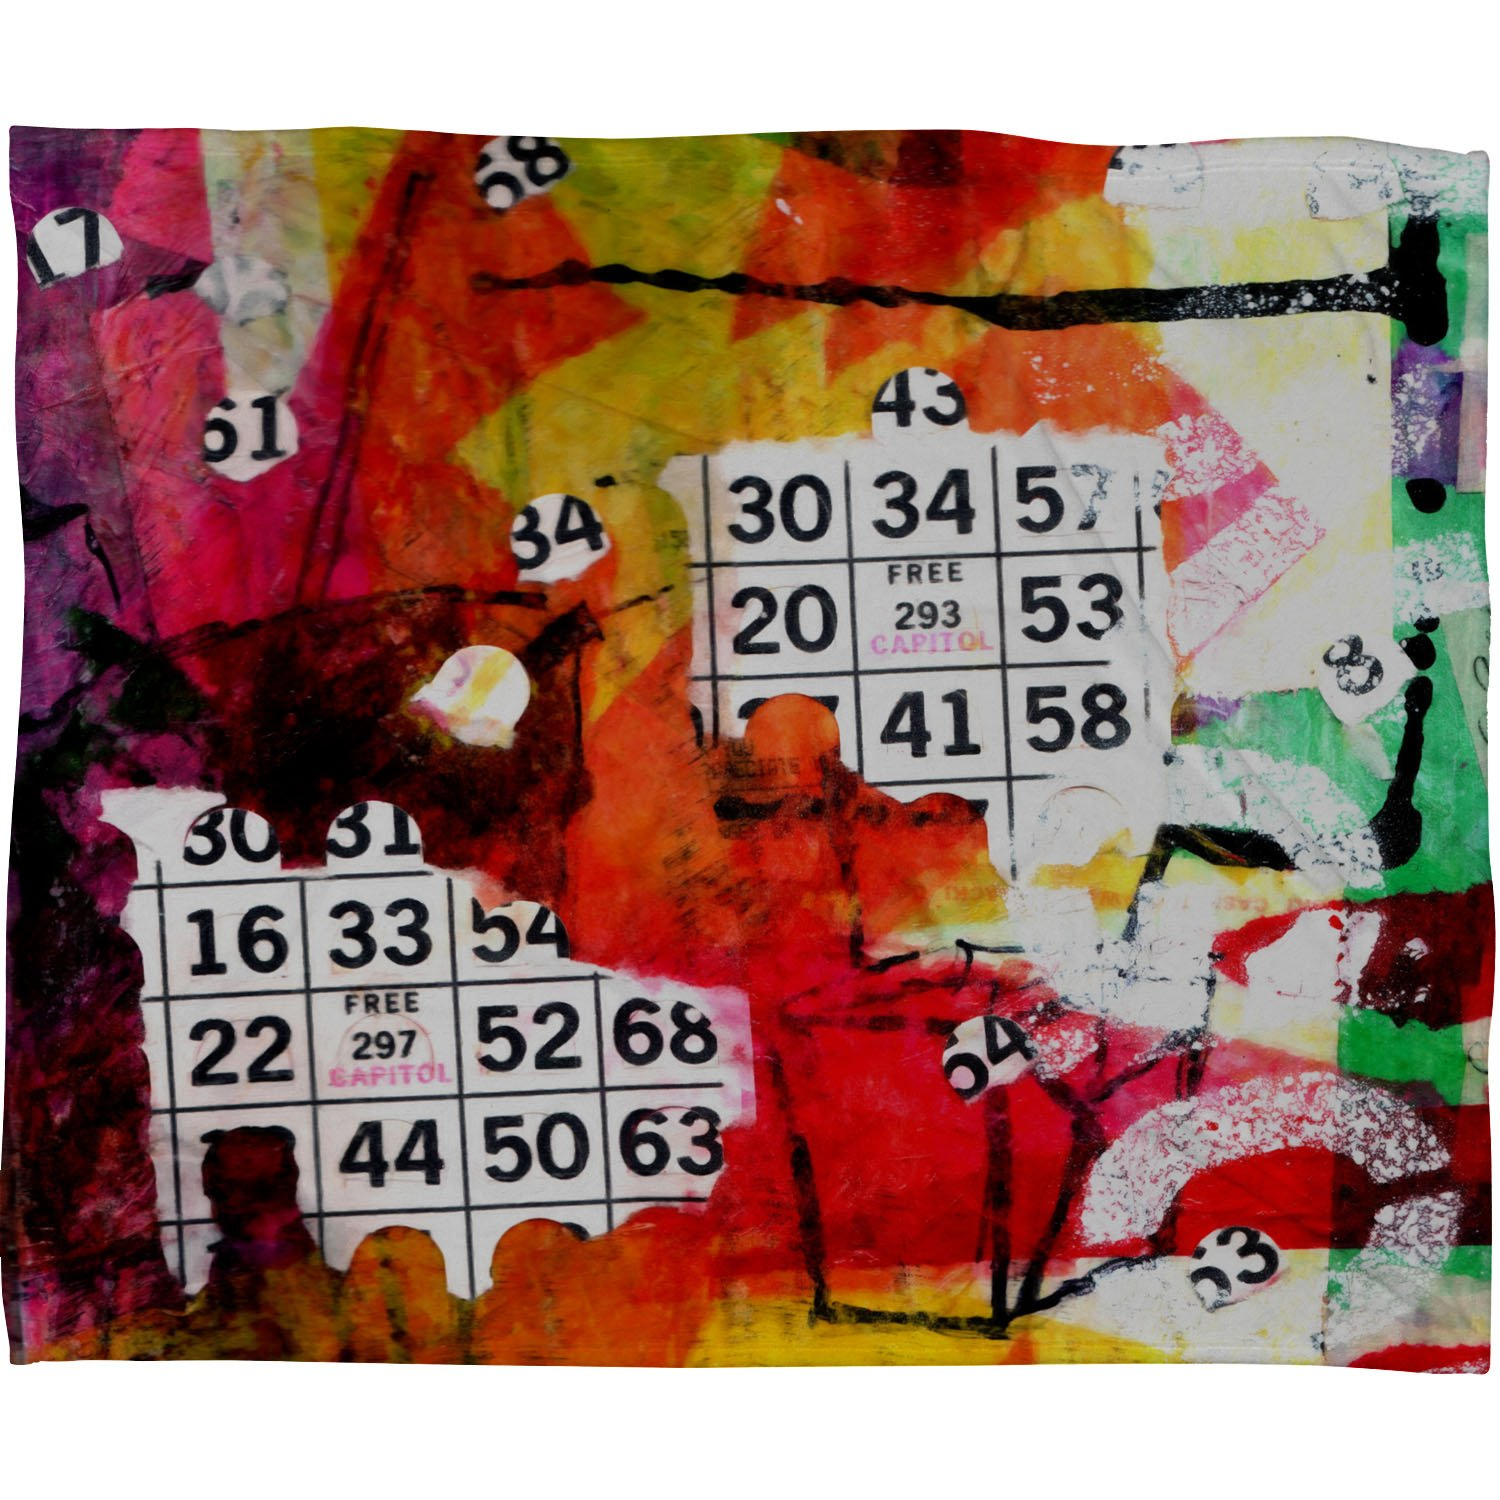 Deny Designs Sophia Buddenhagen Bright Bingo 2 Fleece Throw Blanket, 50 x 60 by Deny Designs